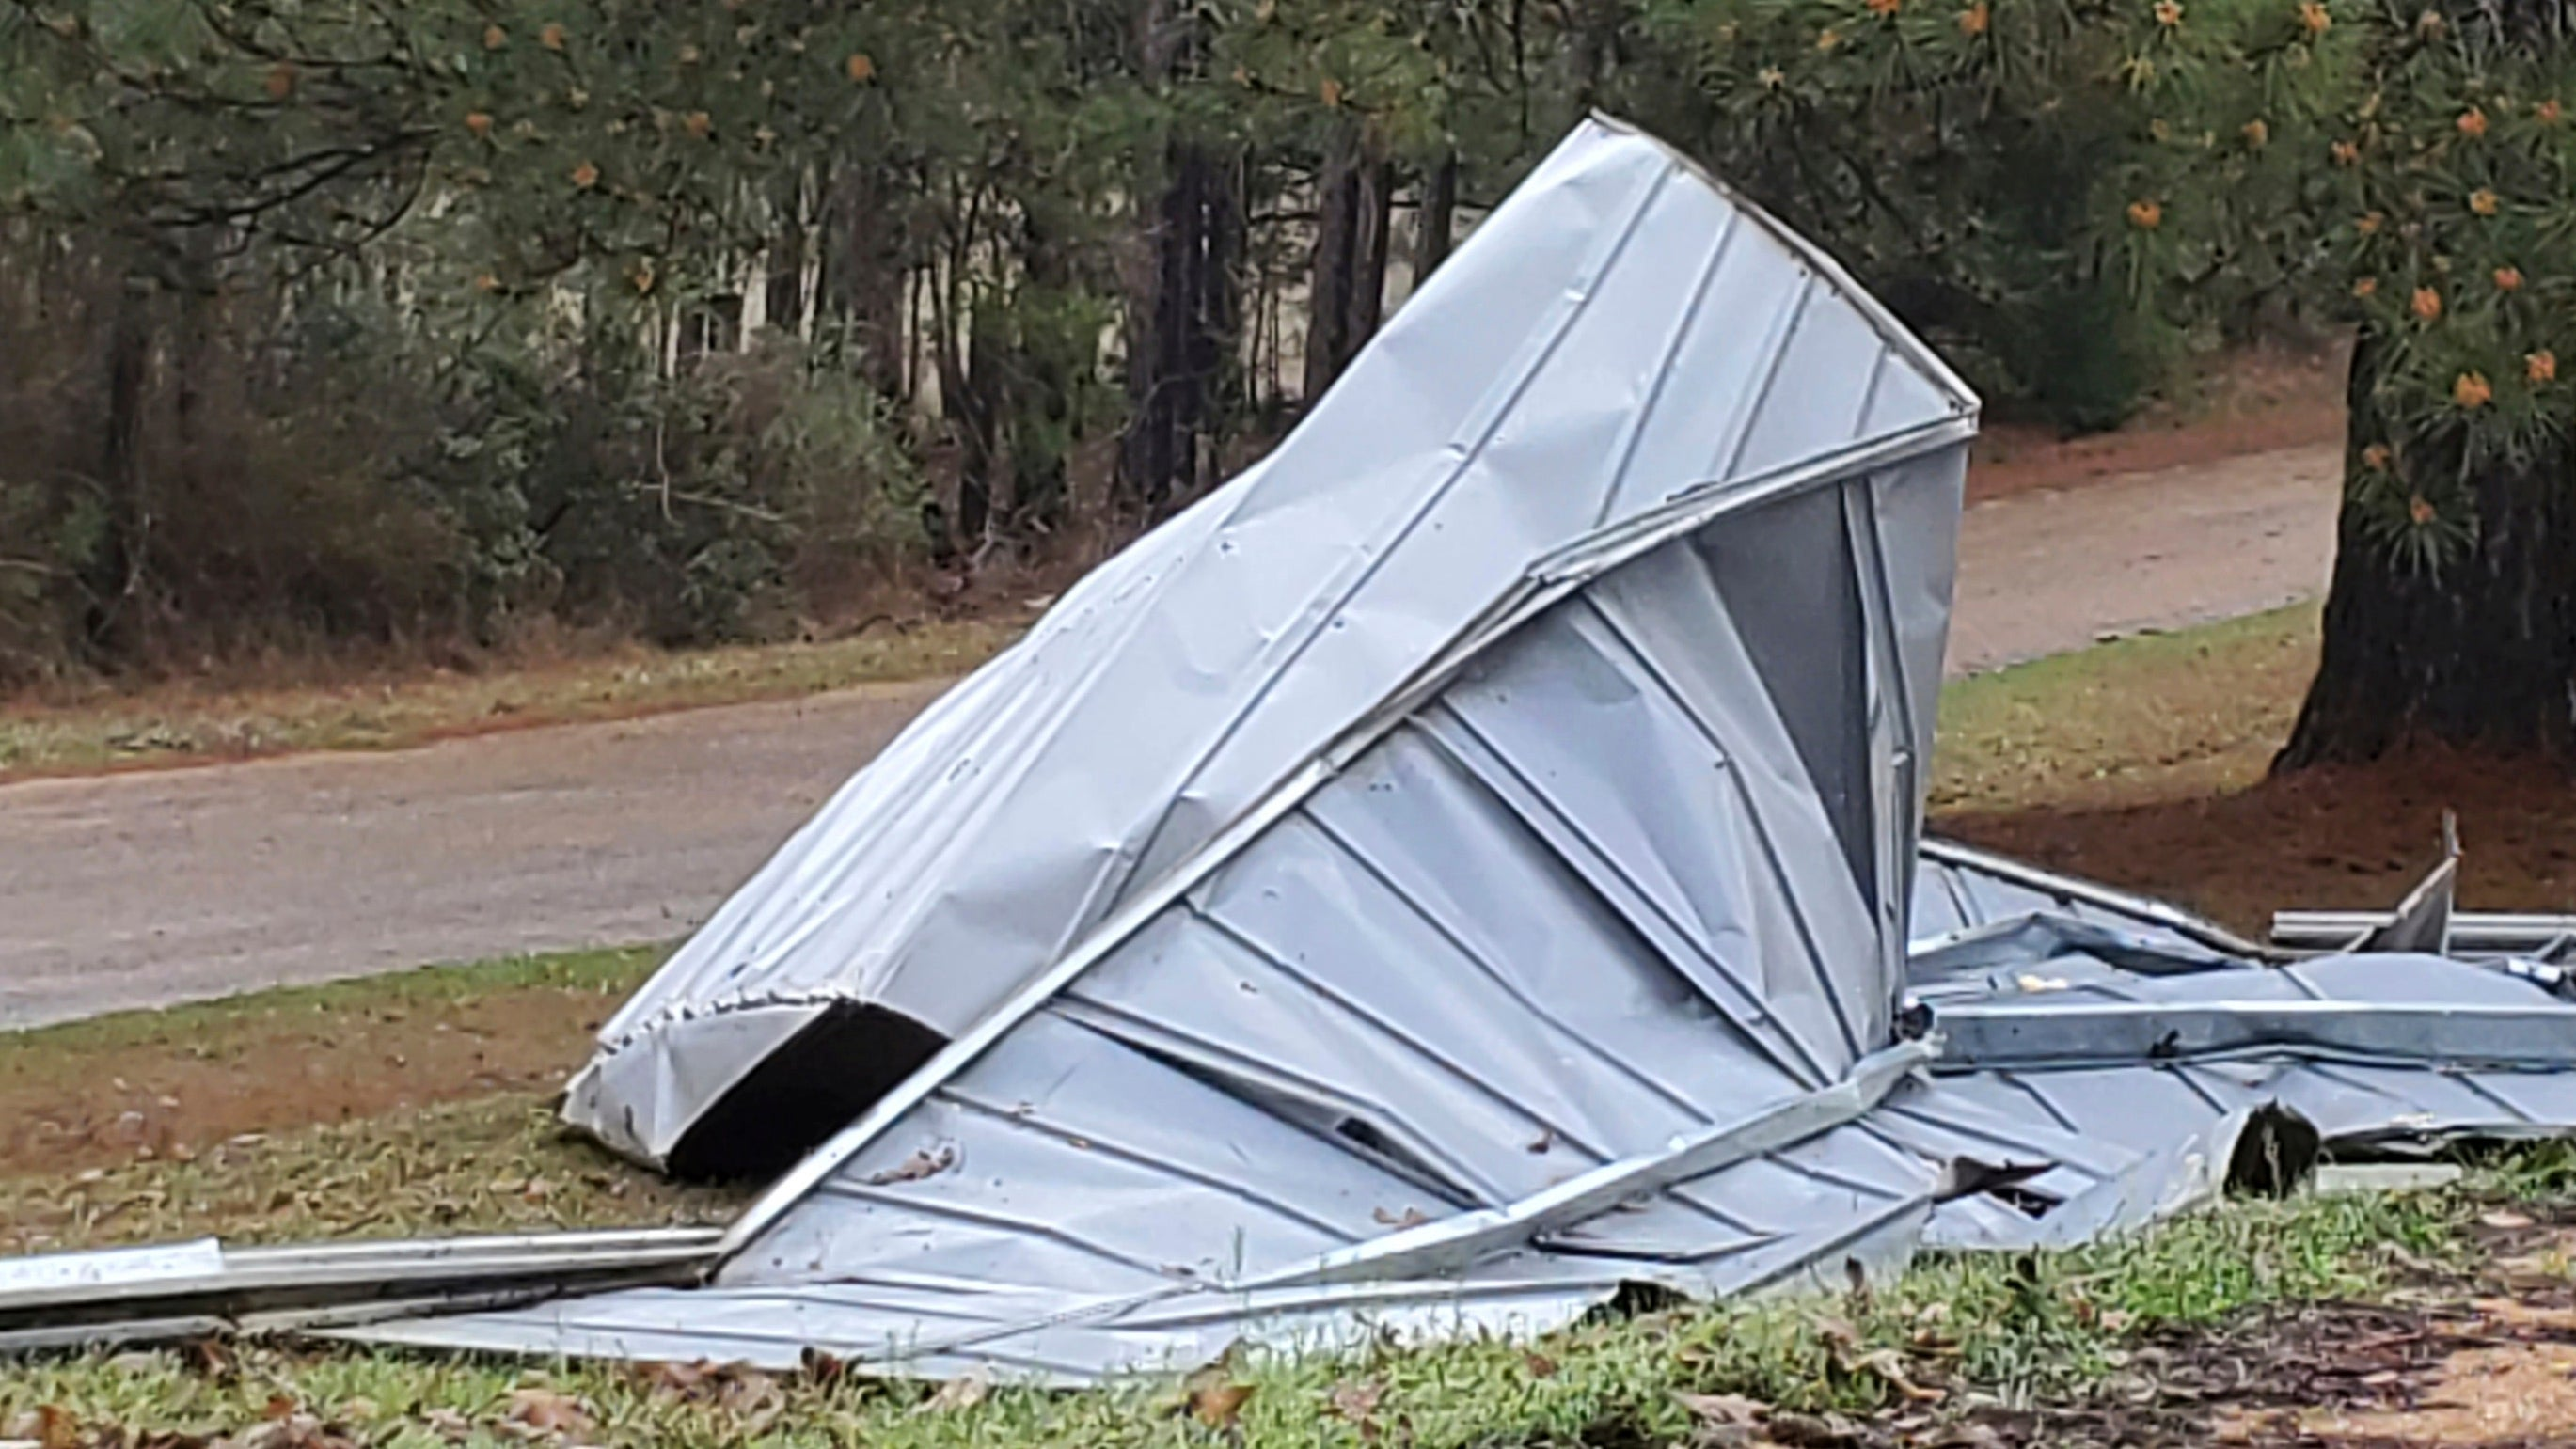 This tin roof was blown off a building by severe winds in the Woolworth community in northeast Lincoln County, Miss., Wednesday, March 17, 2021. Forecasters believe more severe weather is expected Wednesday with the potential for massive tornadoes, downpours and hail the size of tennis balls. (Brett Campbell/The Daily Leader)